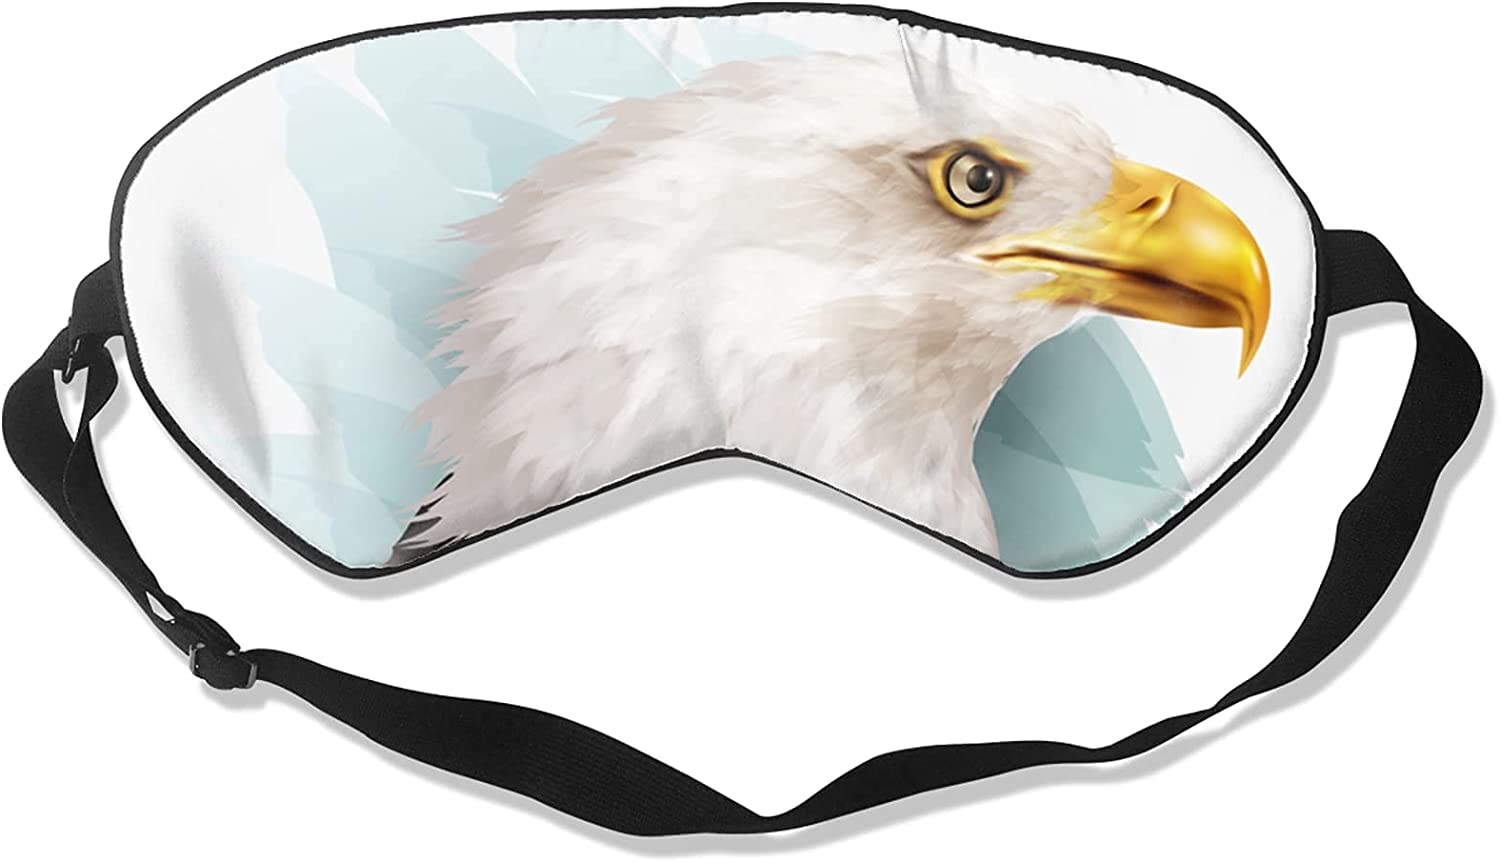 Sleeping Eye Mask Eagle Block-Light Adjustable Blindf Cover Attention brand Easy-to-use